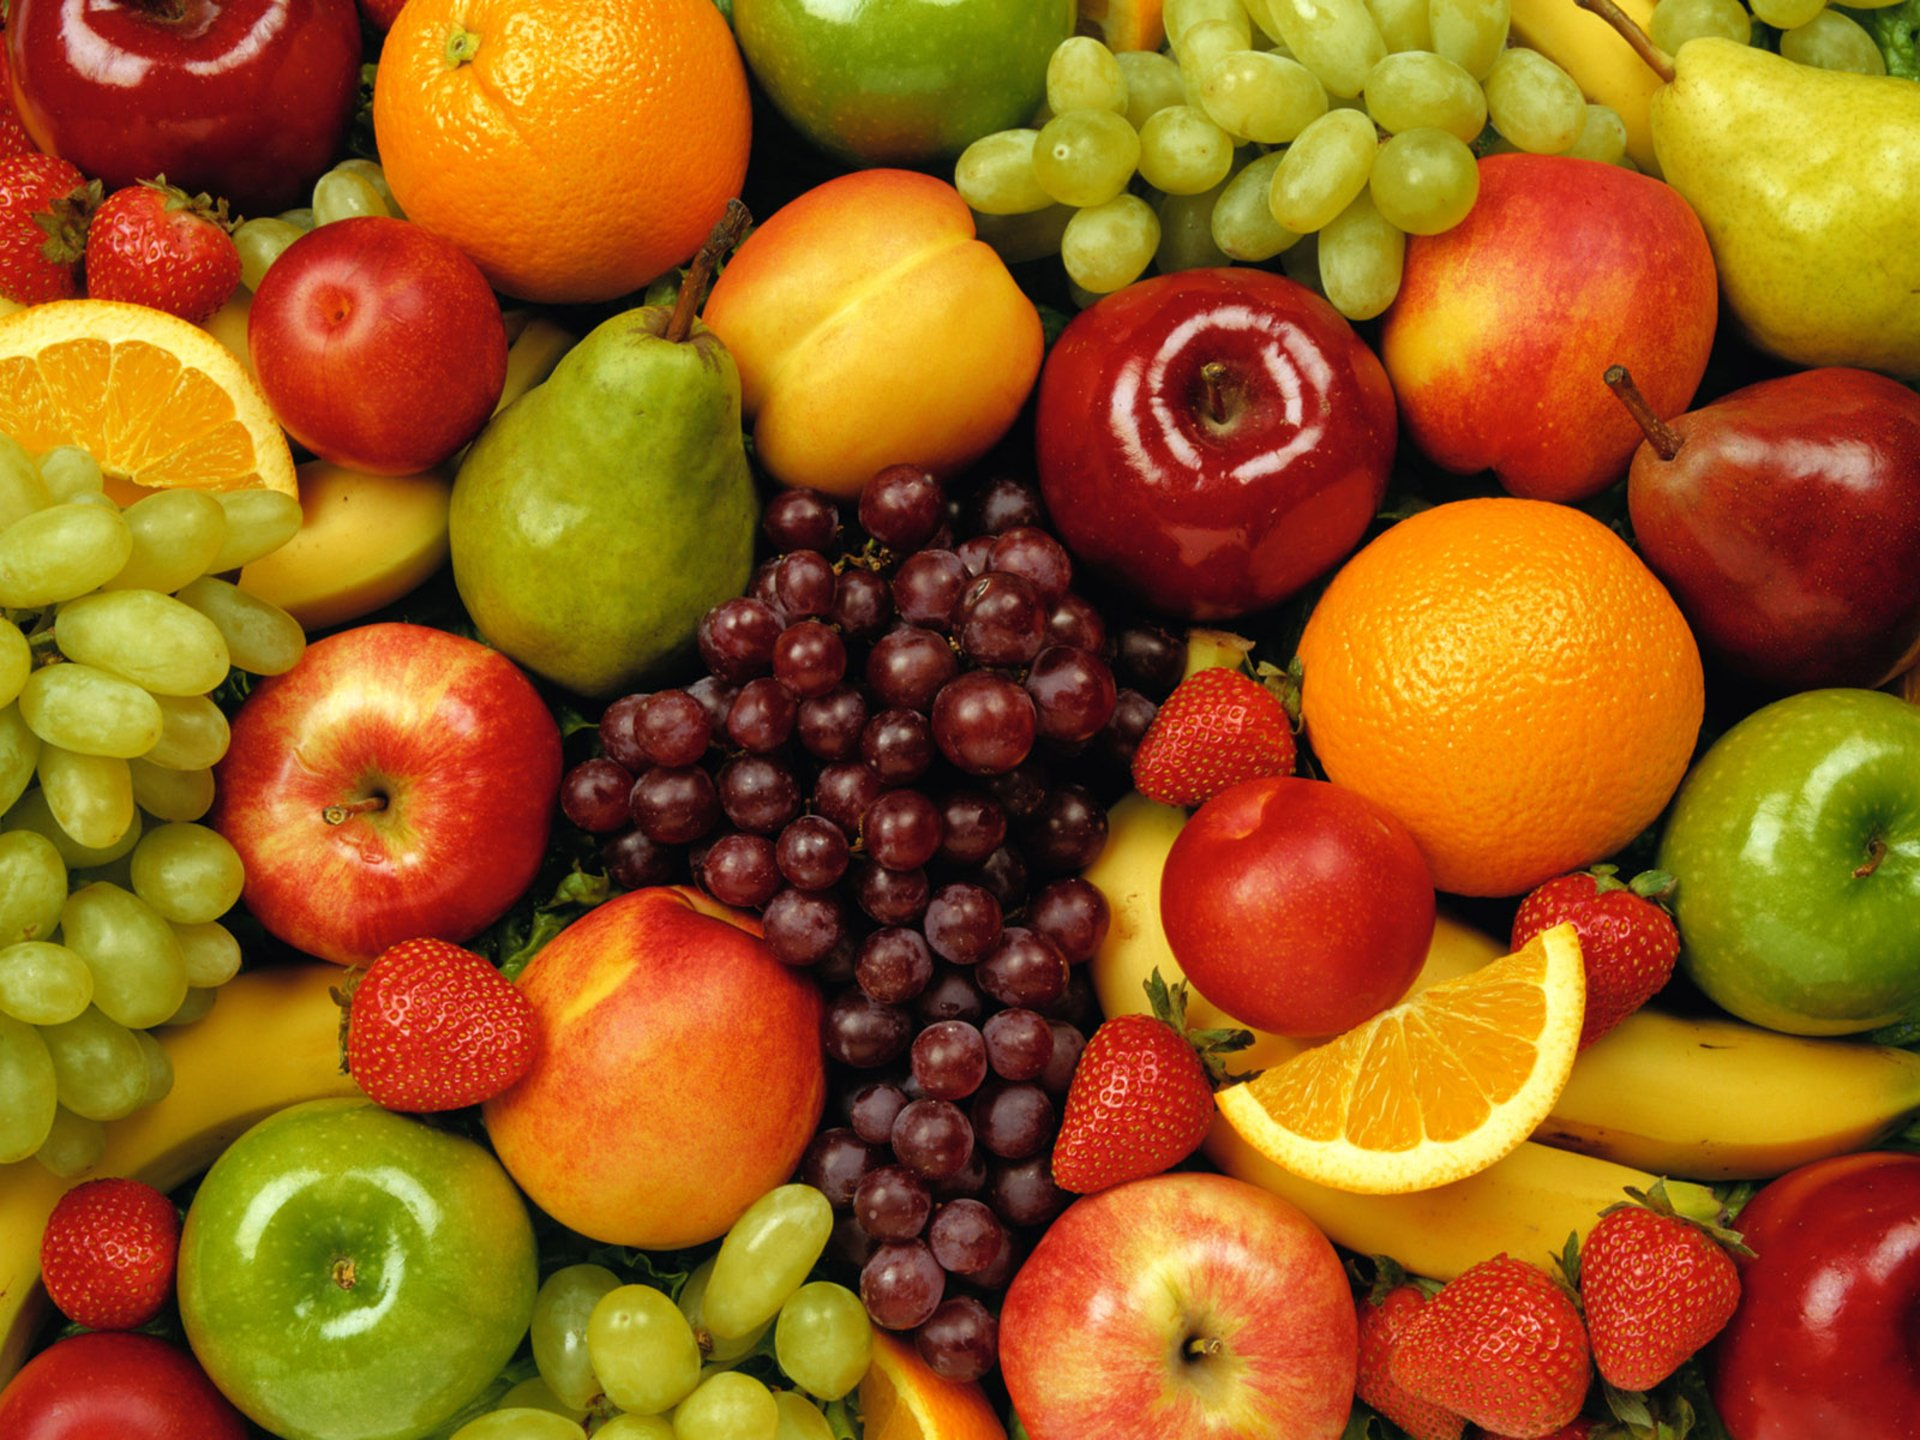 Food - Fruit  Grapes orange (Fruit) Apple Strawberry Wallpaper